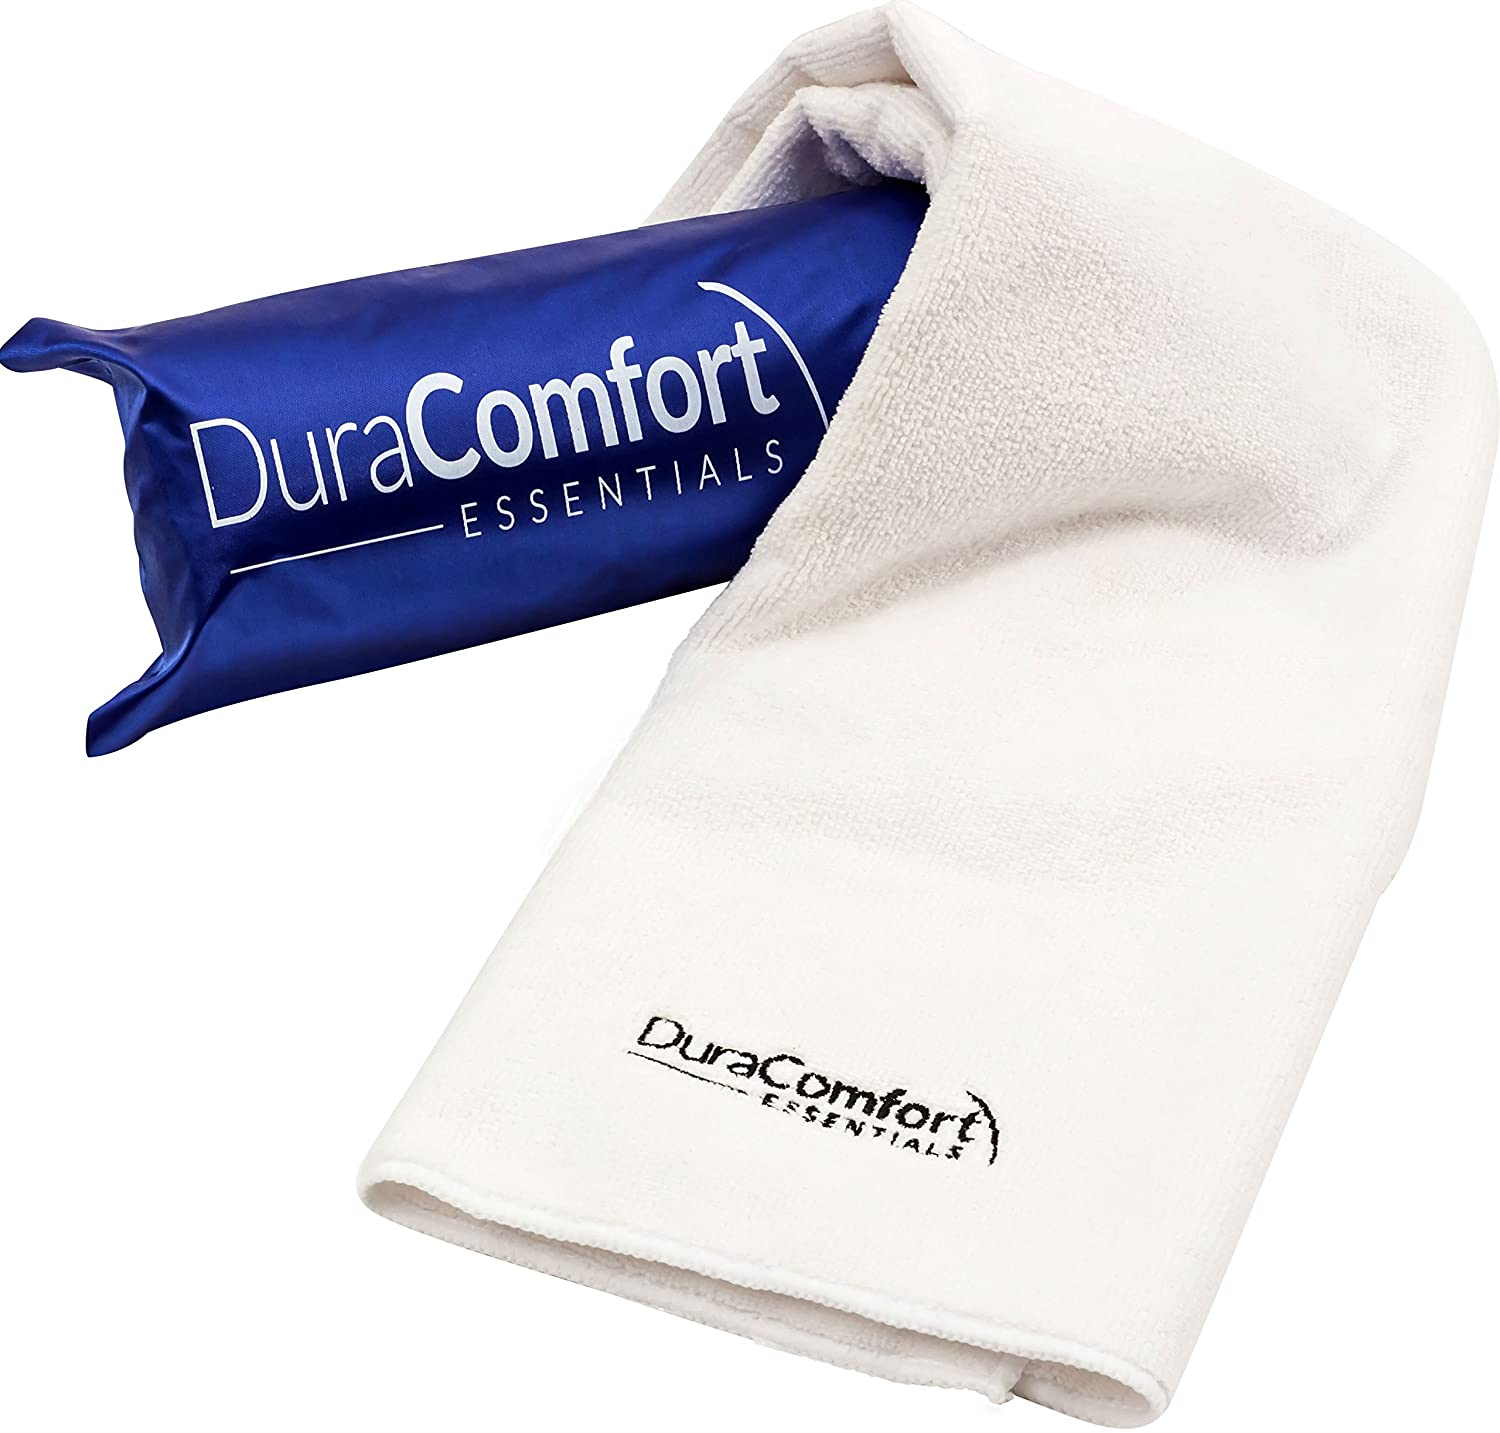 DuraComfort Essentials Super Absorbent Anti-Frizz Microfiber Hair Towel Large 41 x 19-Inches NA